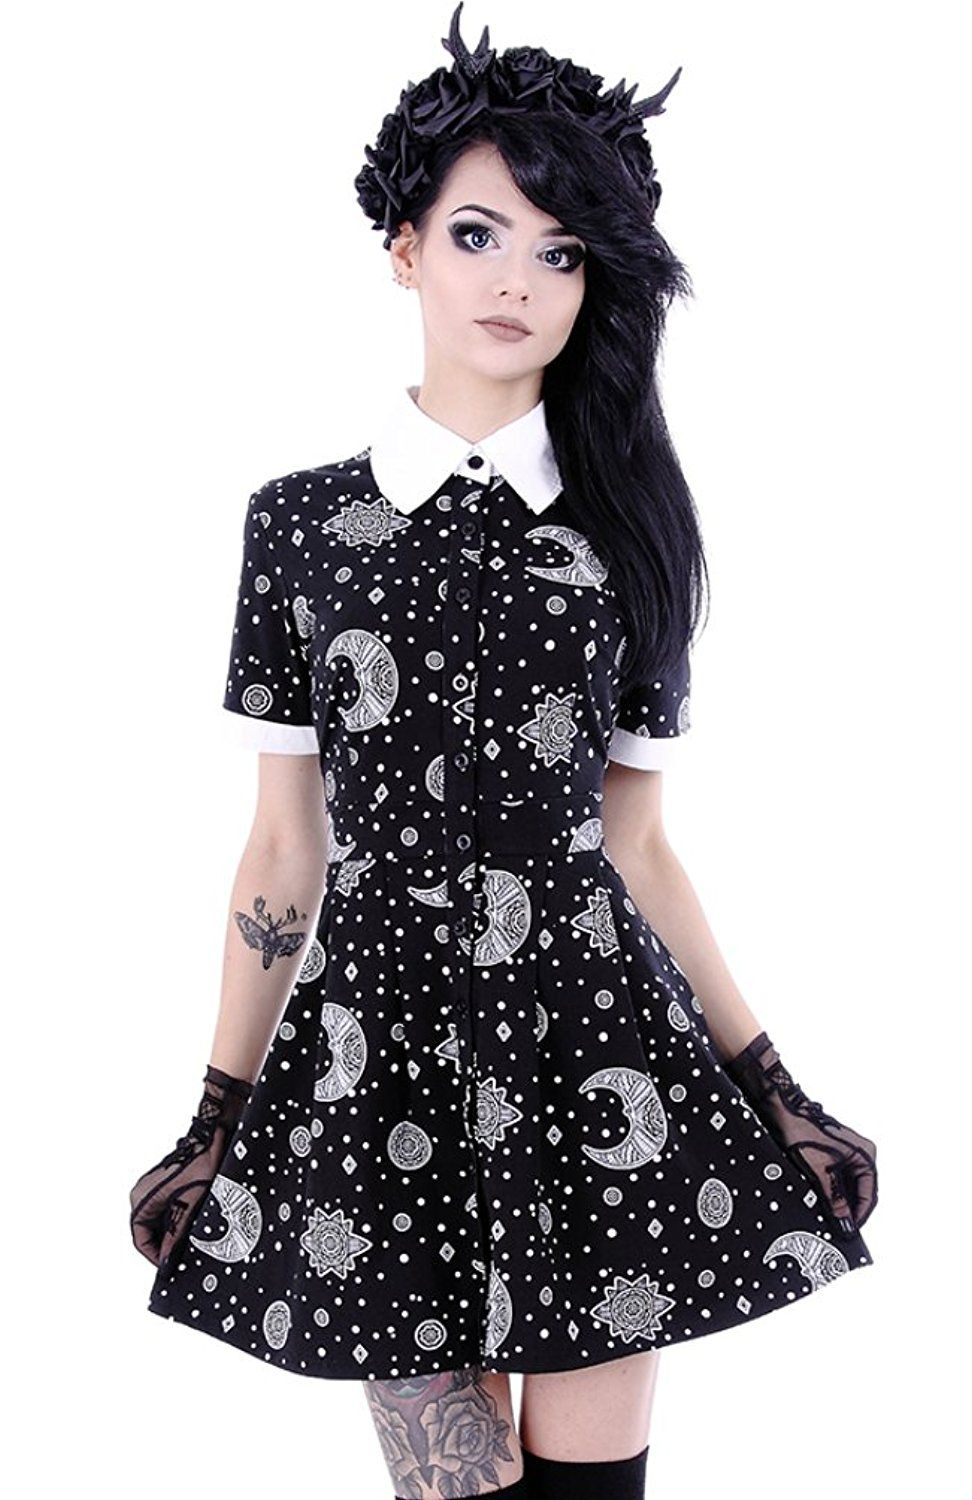 2053535df1f0e Restyle Moon Print Occult Astronomy Nugoth Punk Collared Mini Babydoll Dress:  Amazon.co.uk: Clothing